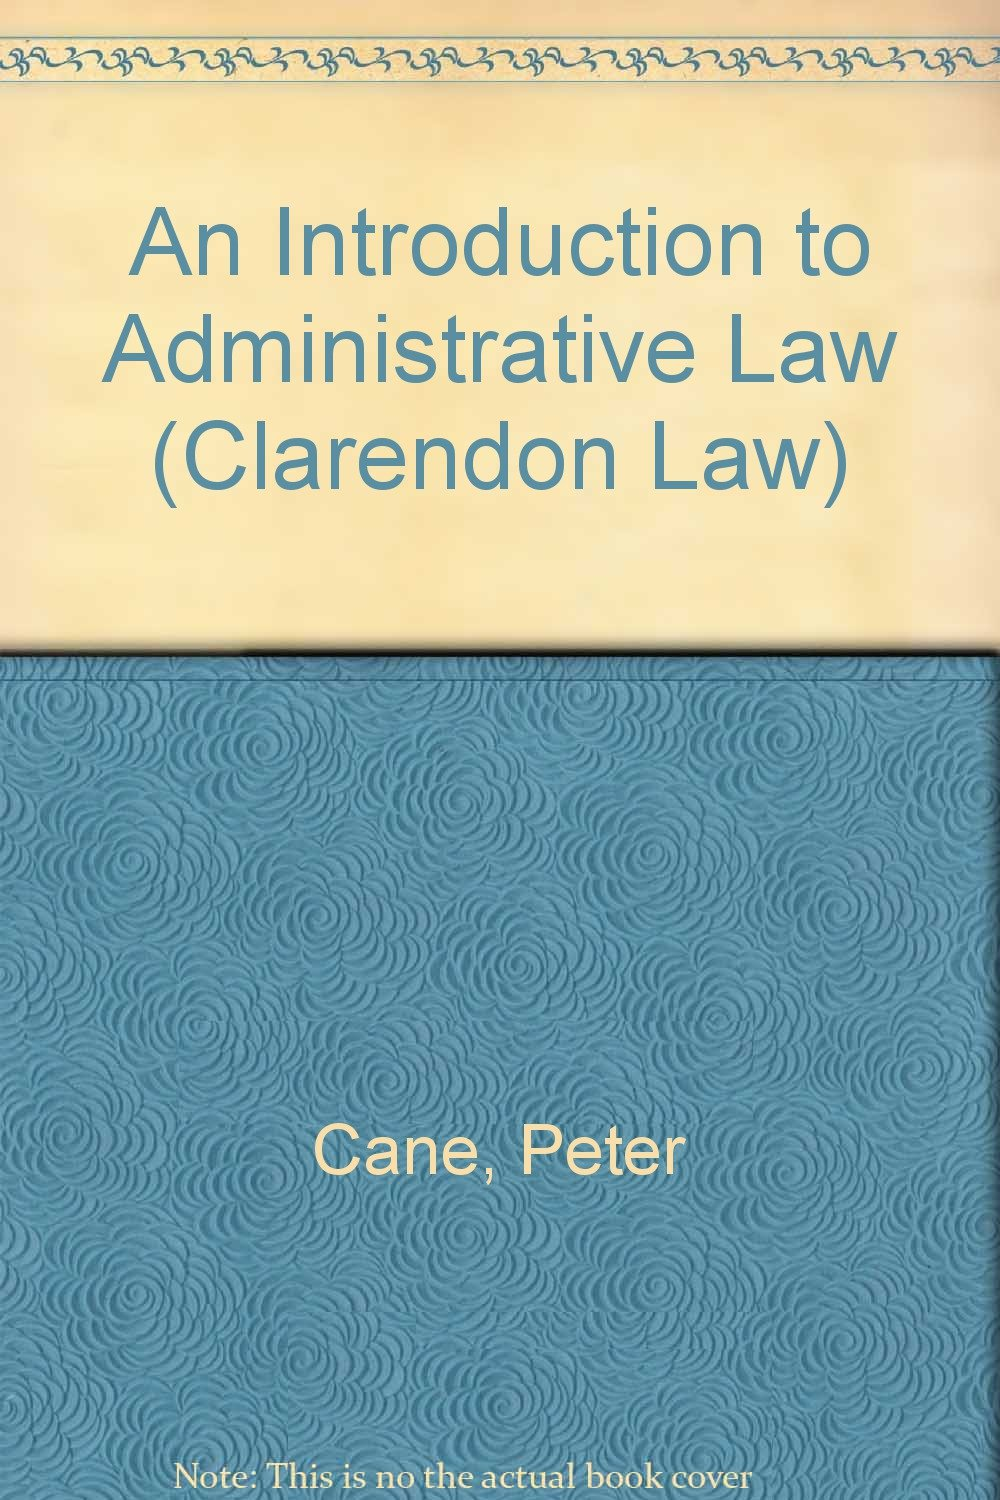 An Introduction to Administrative Law (Clarendon Law Series): Peter Cane:  9780198256892: Amazon.com: Books